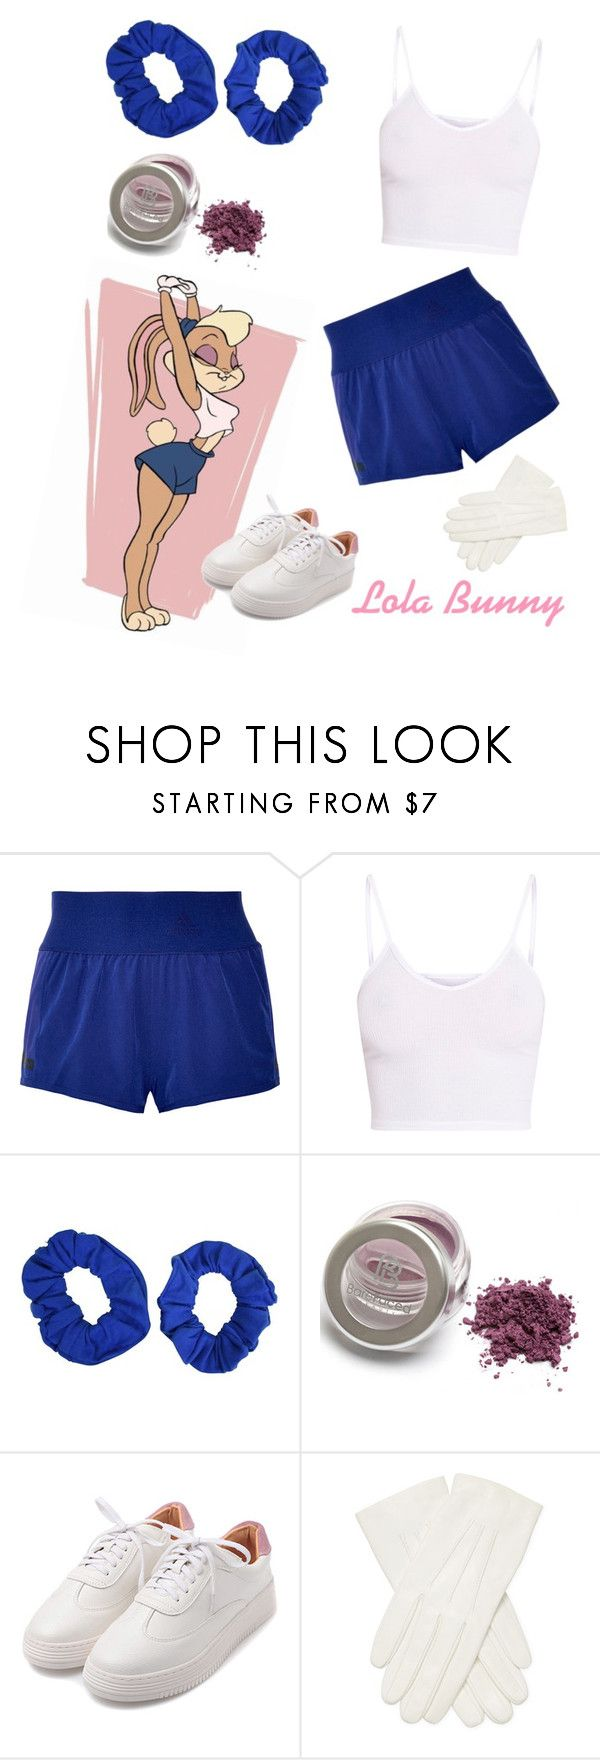 """Lola Bunny"" by volitairia ❤ liked on Polyvore featuring adidas, BasicGrey and Valentino"